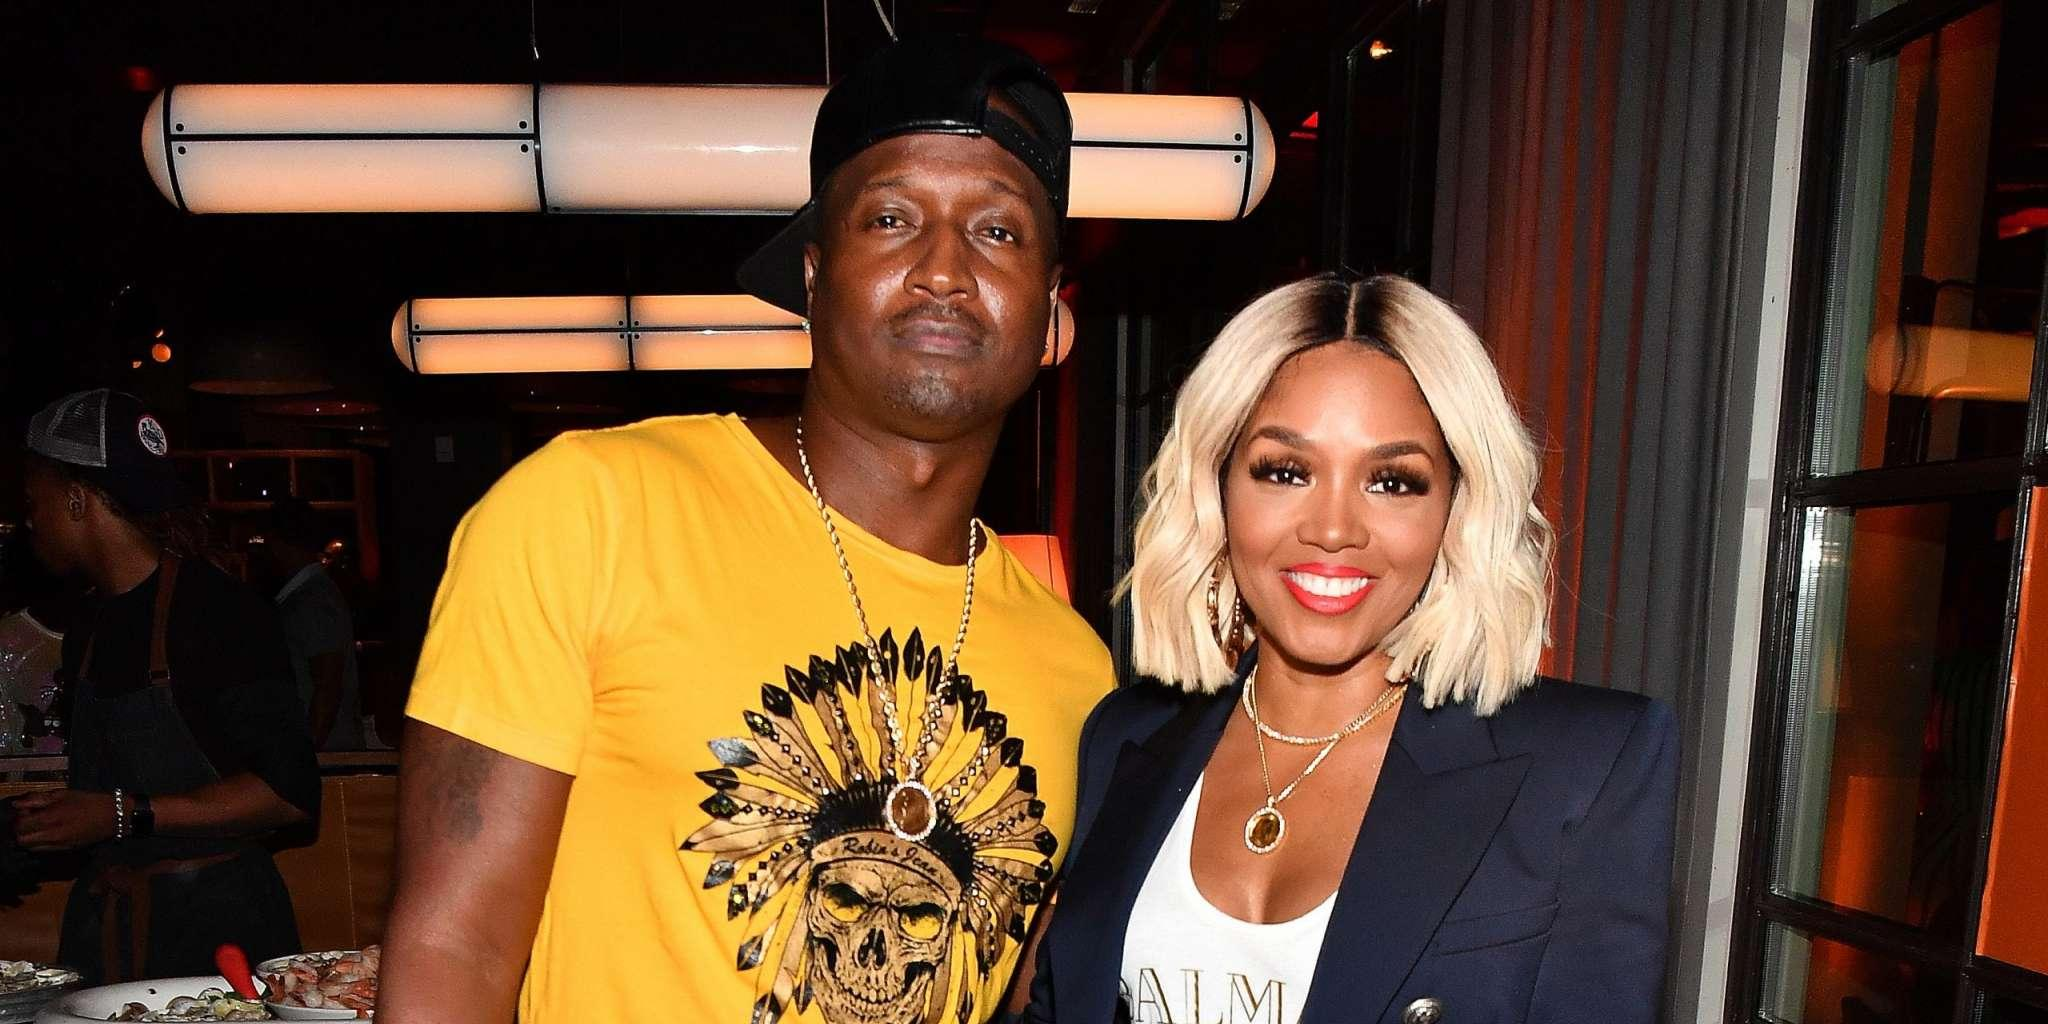 Rasheeda Frost Quotes 2Pac - Check Out Her Message Here